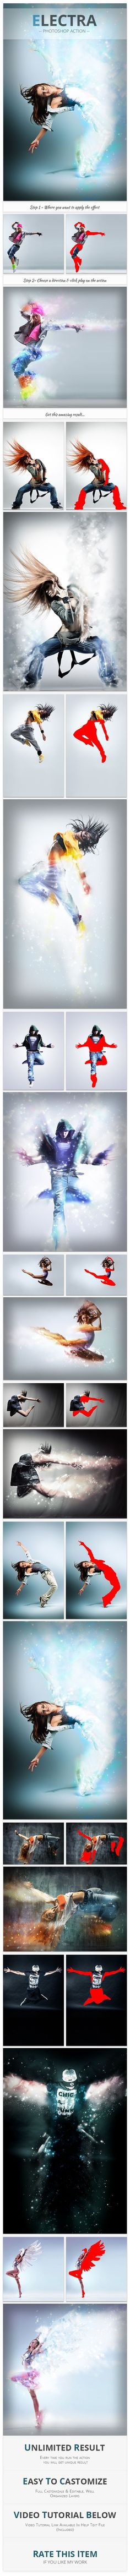 Electra - Photoshop Action. Download here: https://graphicriver.net/item/electra-photoshop-action/17164883?ref=ksioks